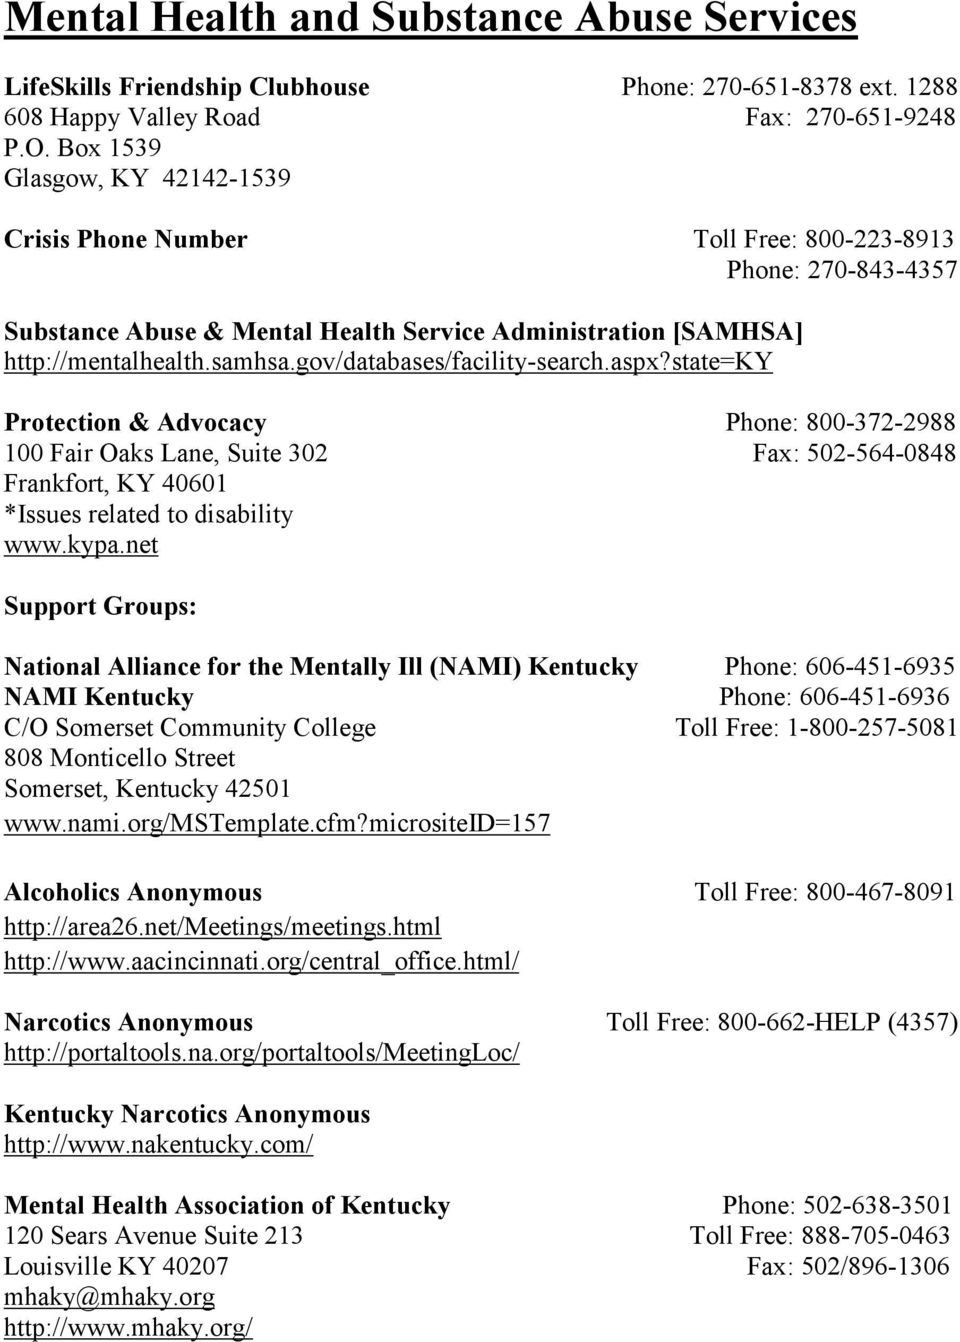 gov/databases/facility-search.aspx?state=ky Protection & Advocacy Phone: 800-372-2988 100 Fair Oaks Lane, Suite 302 Fax: 502-564-0848 Frankfort, KY 40601 *Issues related to disability www.kypa.